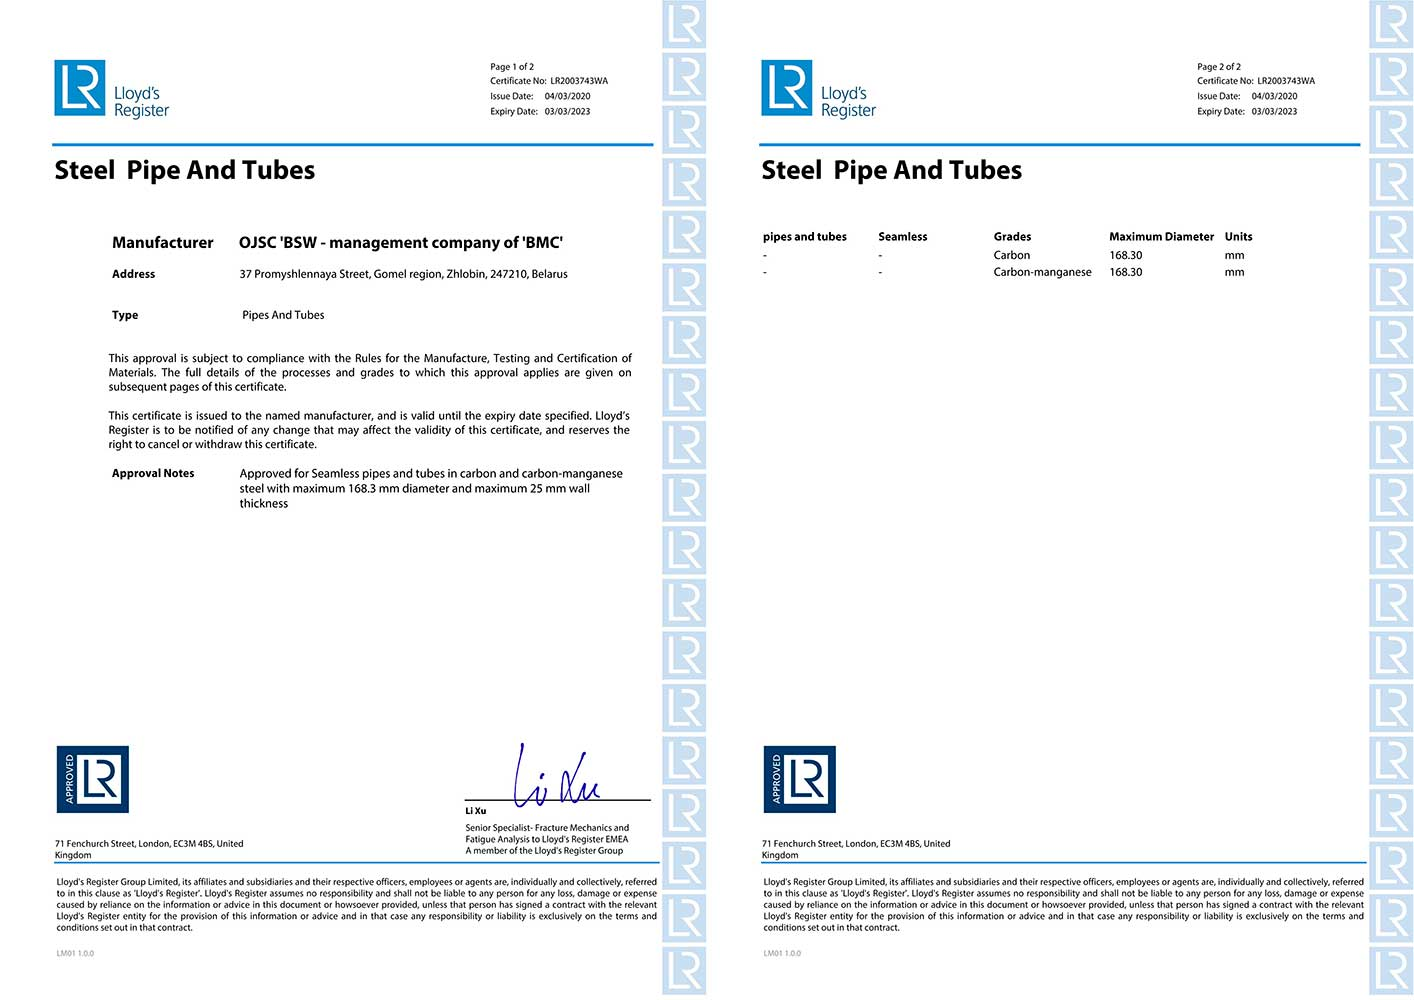 2.    Certificate No. LR2003743WA Lloyd's Register EMEA (Great Britain) for production of seamless hot-rolled pipes for shipbuilding from carbon and carbon- manganese steel grades of diameter 168,3 mm and wall thickness 25 mm according to the requirements of   Lloyd's Register Rules